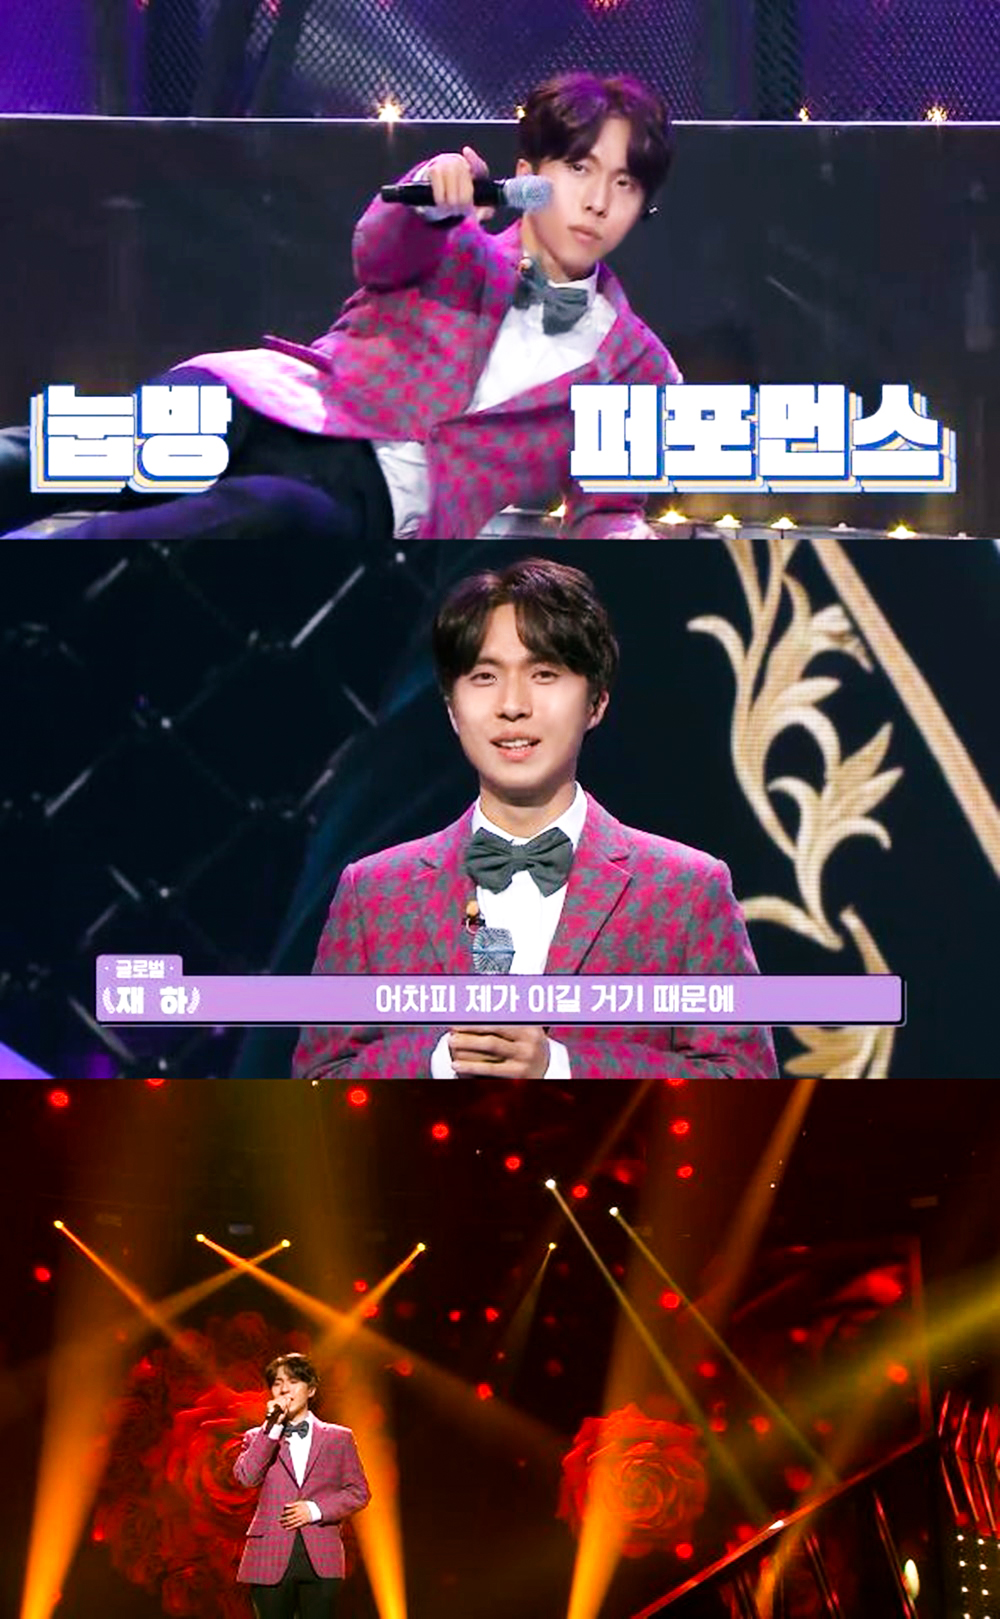 'Trot National Competition' Jae-ha, sang 'Lipstick', the song of his mother